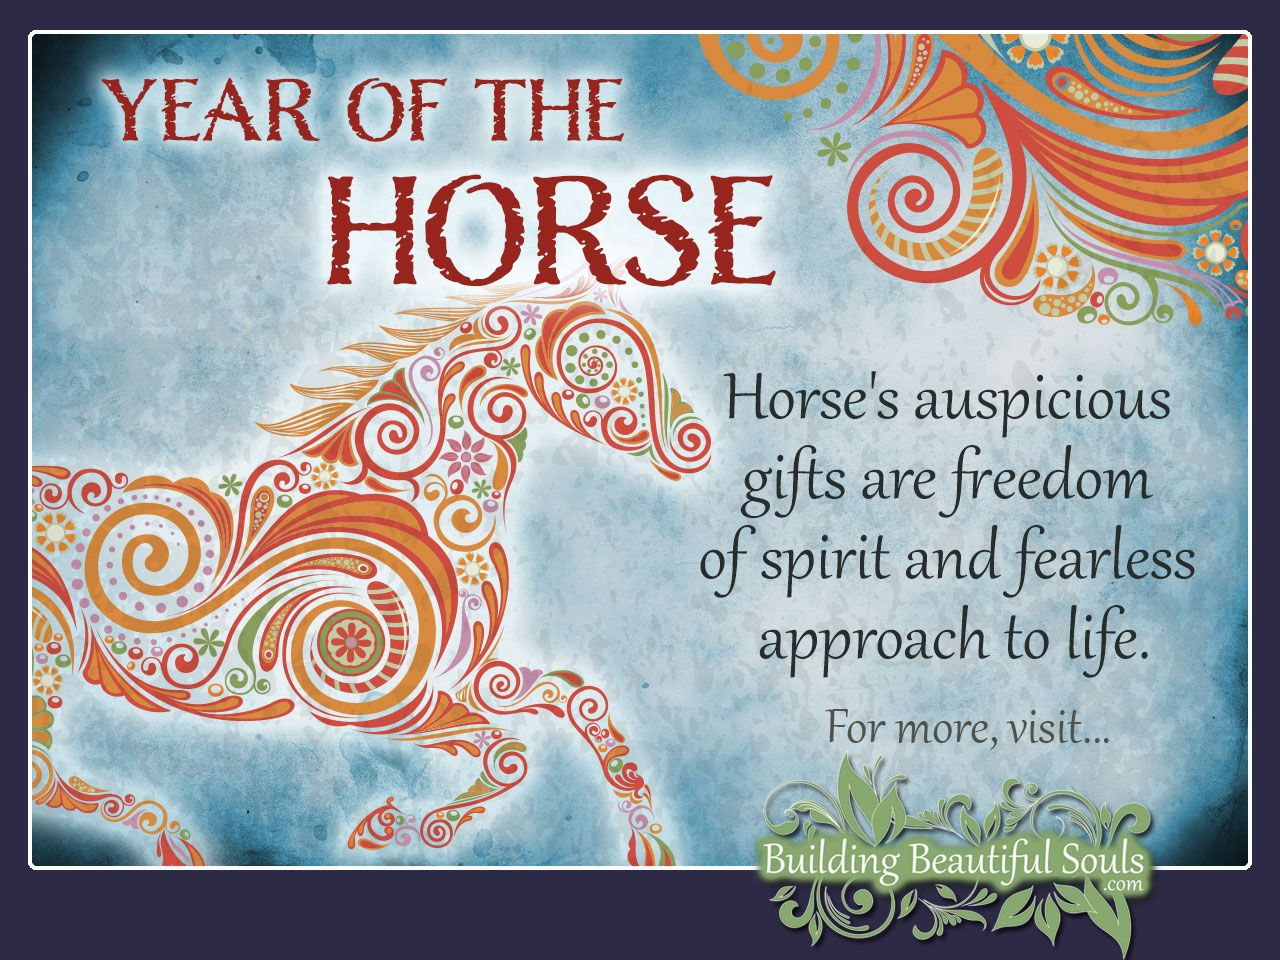 Chinese Zodiac Horse Chinese zodiac signs, Year of the